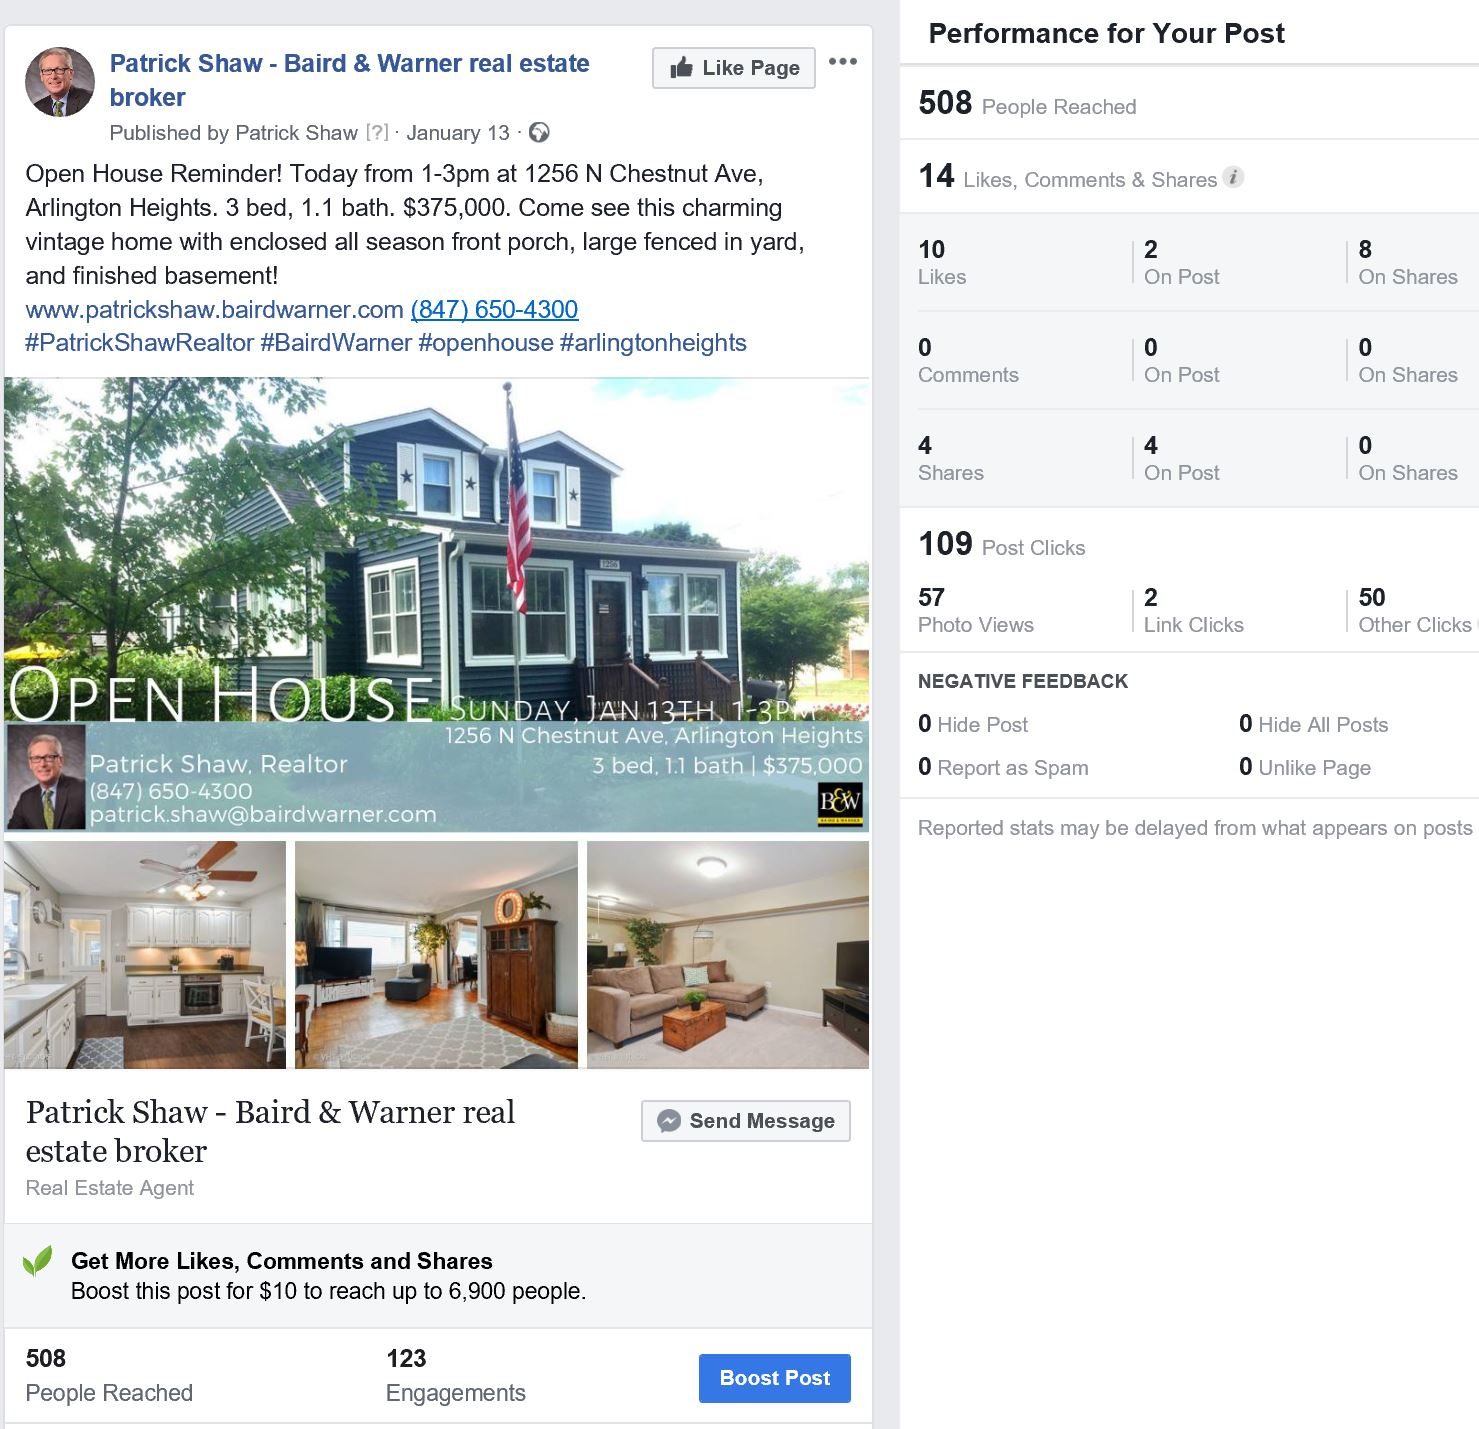 Facebook analytics for Patrick Shaw